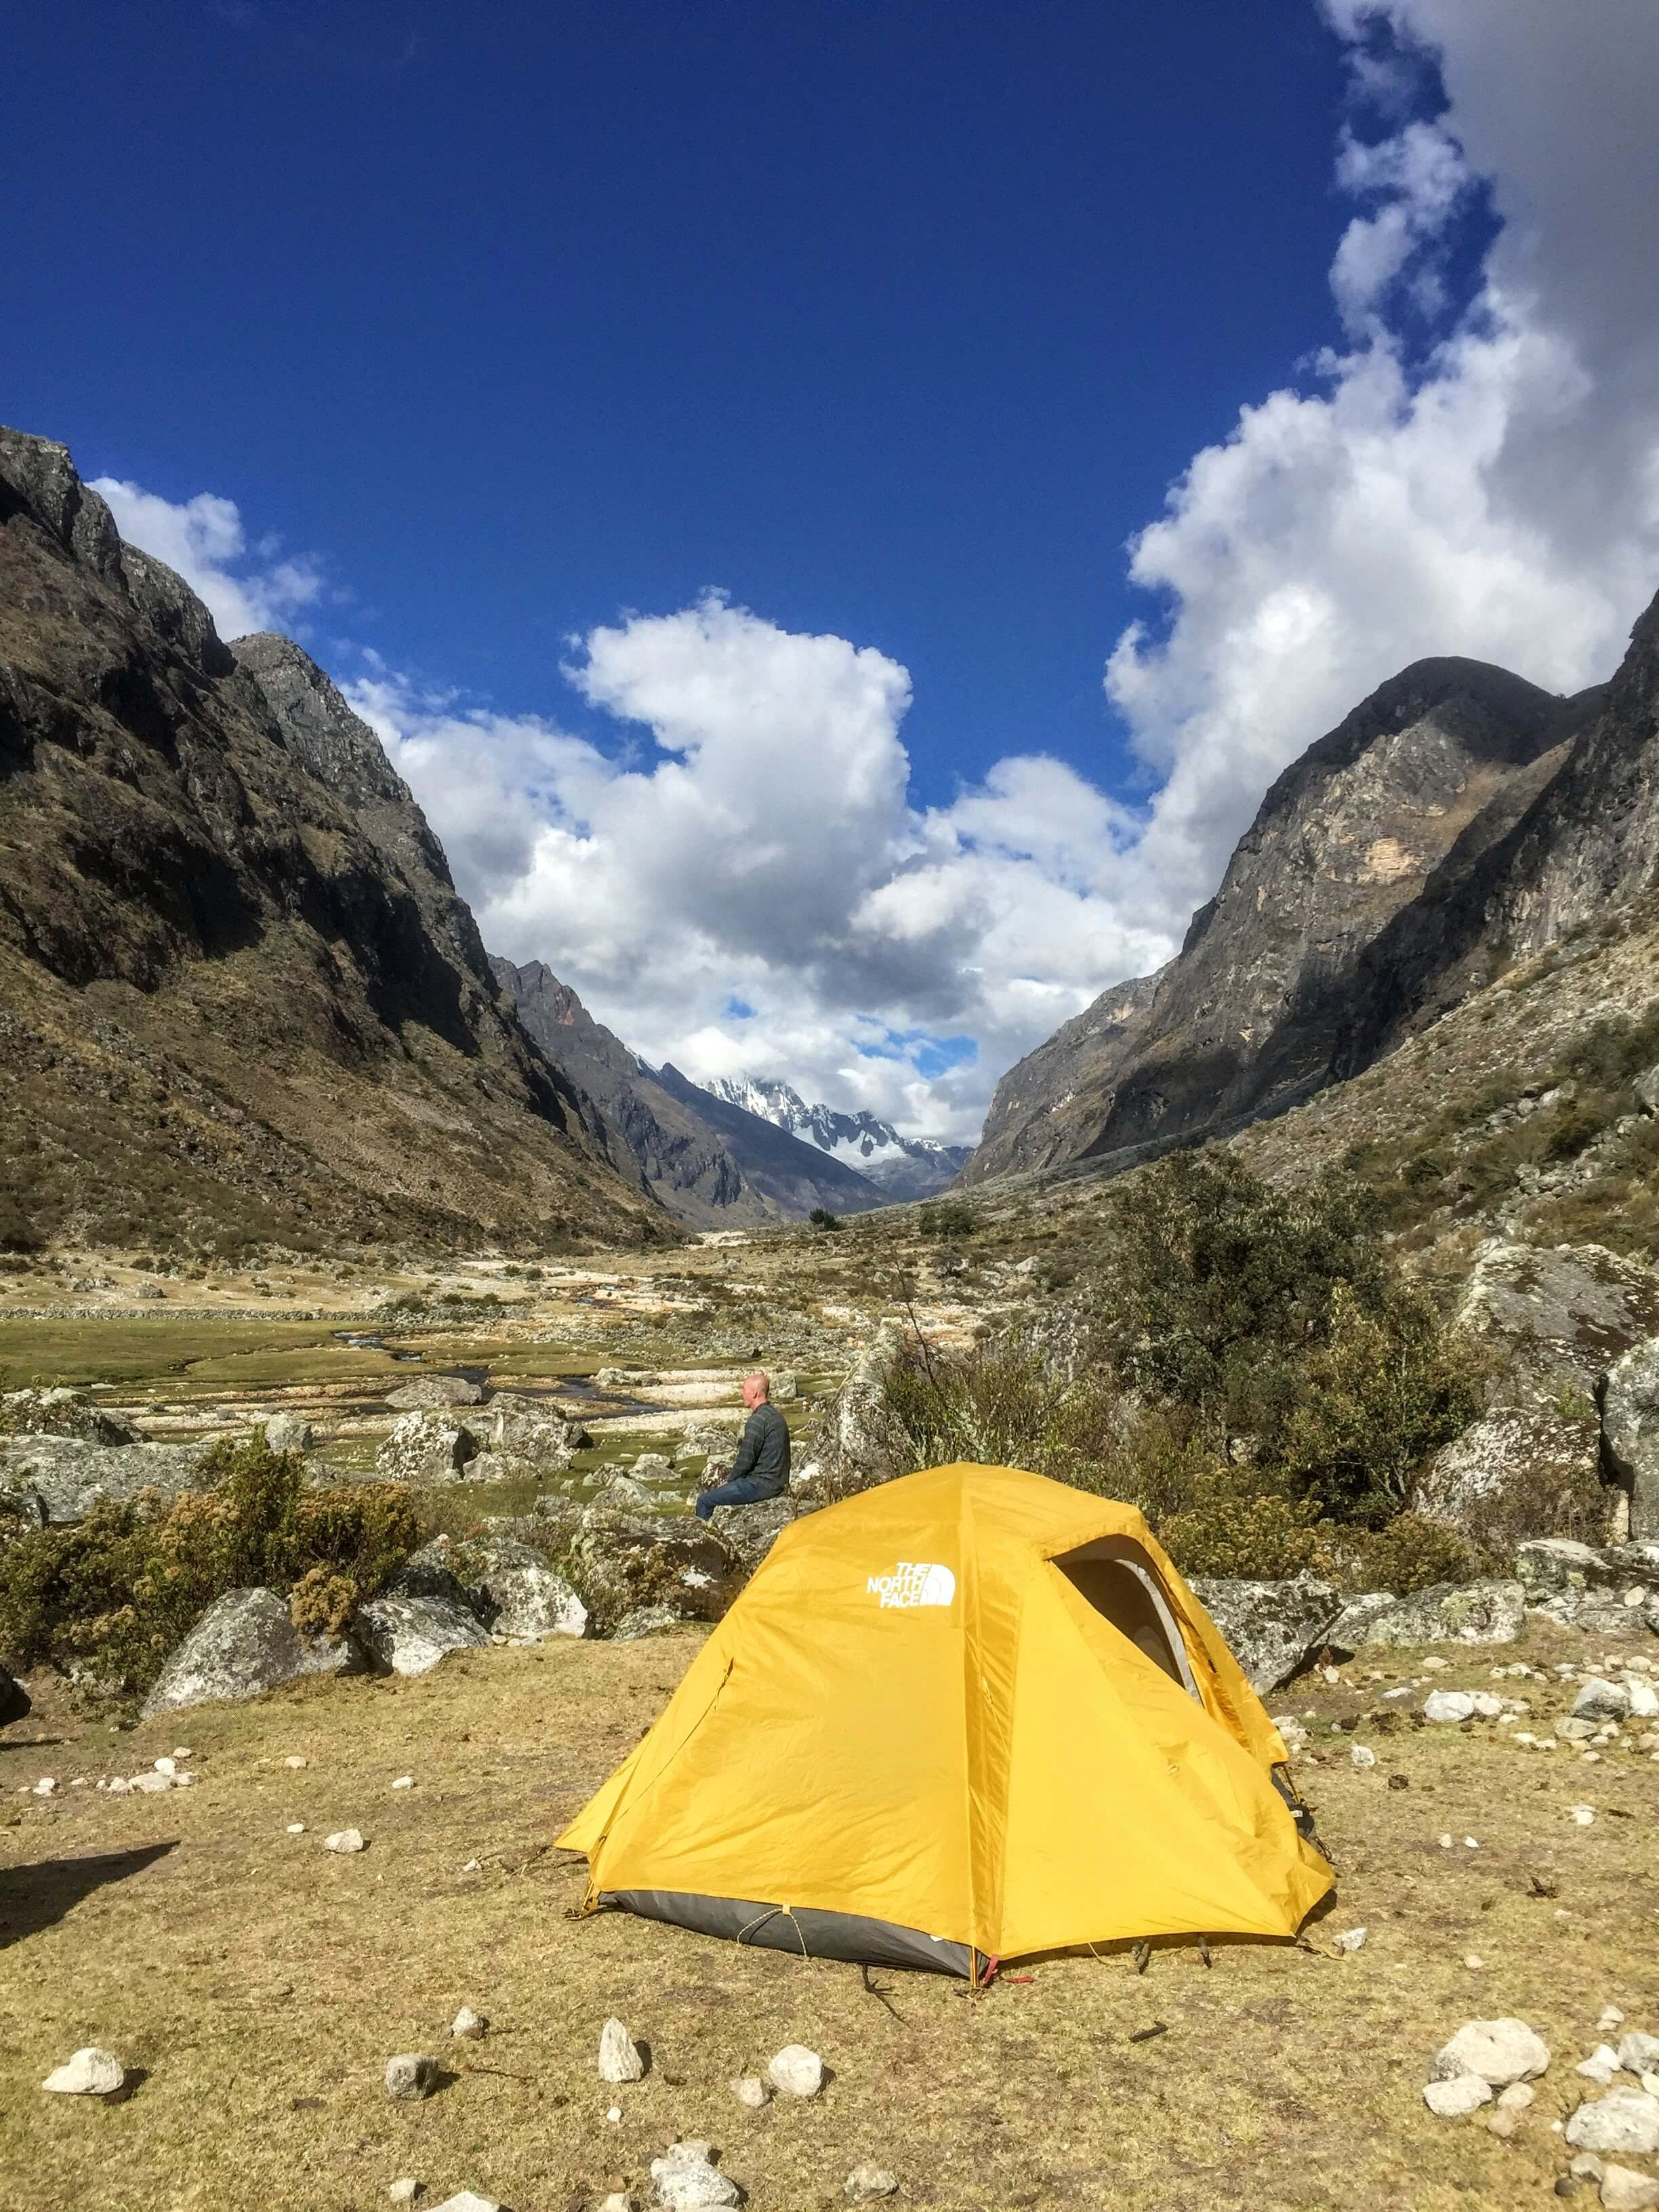 third campsite on the Santa cruz trek in Peru